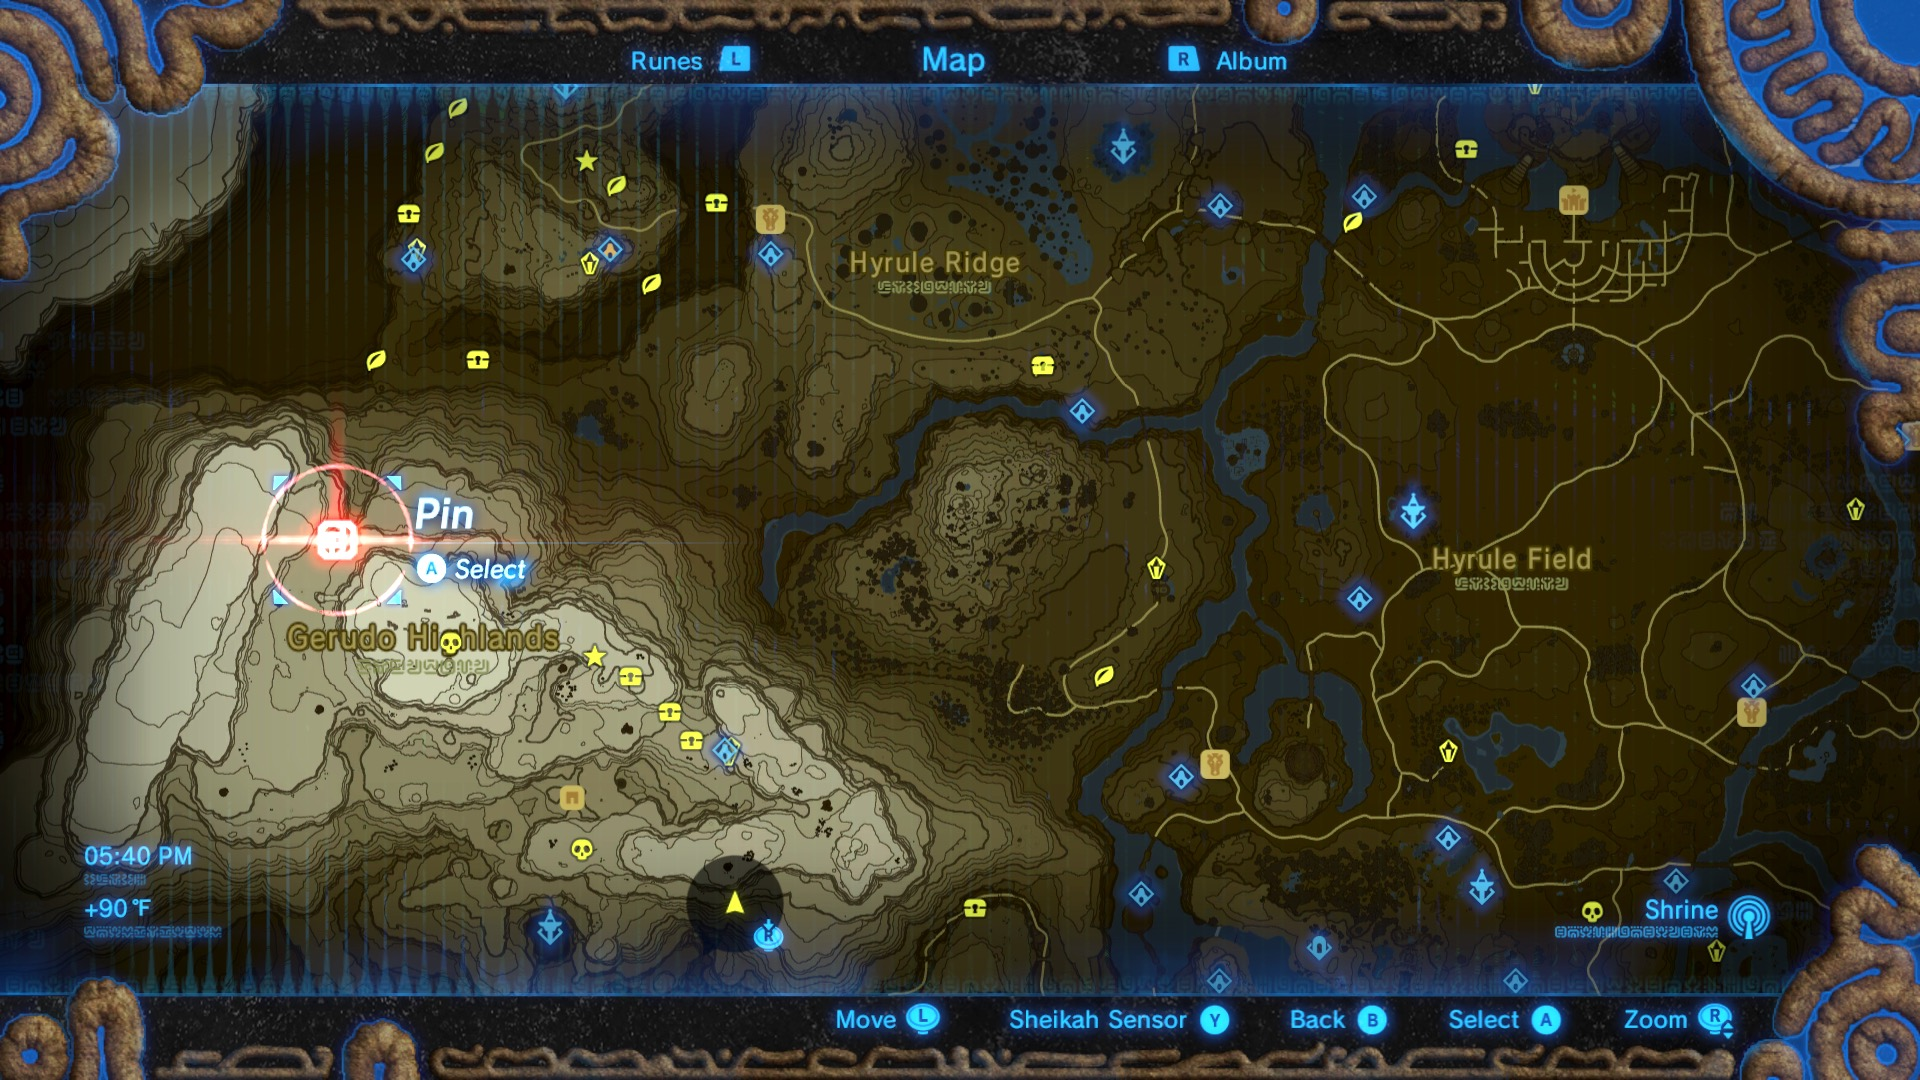 Zelda Breath Of The Wild Guide The Eighth Heroine Location And How To Get Sand Boots Polygon Trying to complete the eighth heroine side quest in the legend of zelda: zelda breath of the wild guide the